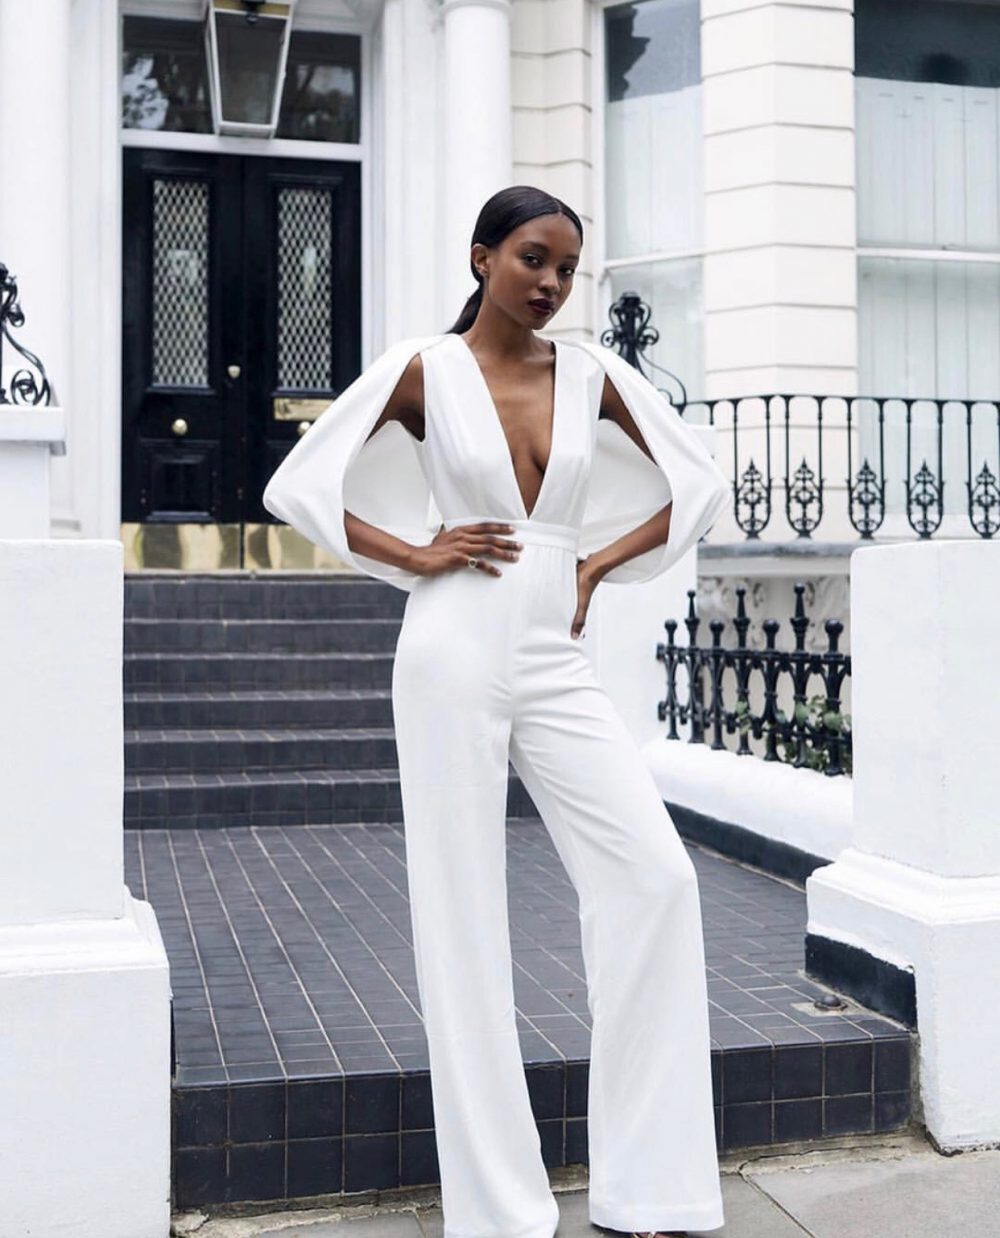 'The Mode' - Introducing a Never-ending Wardrobe | The Luxe Diary